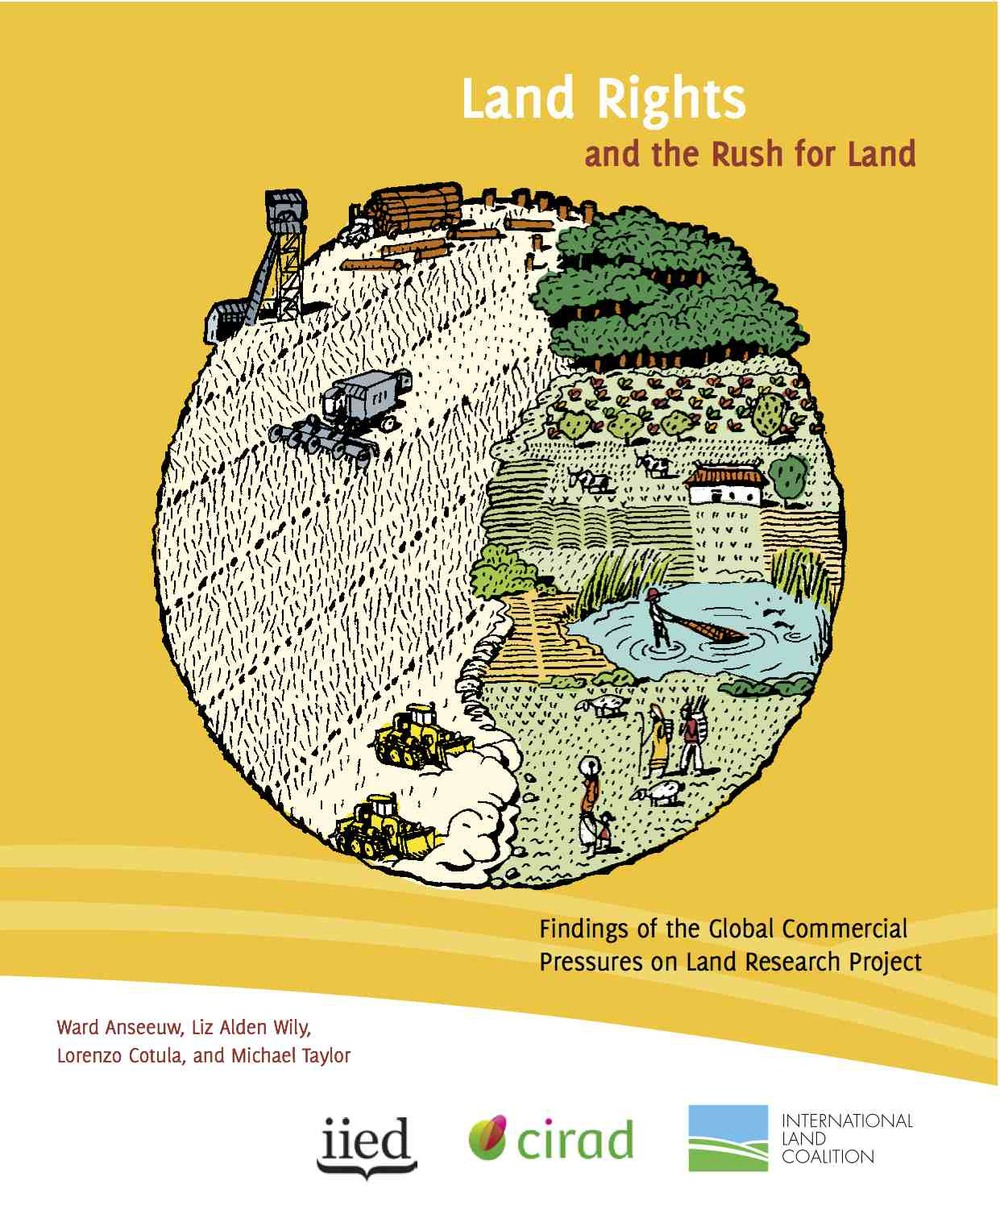 Land Rights and the Rush for Land